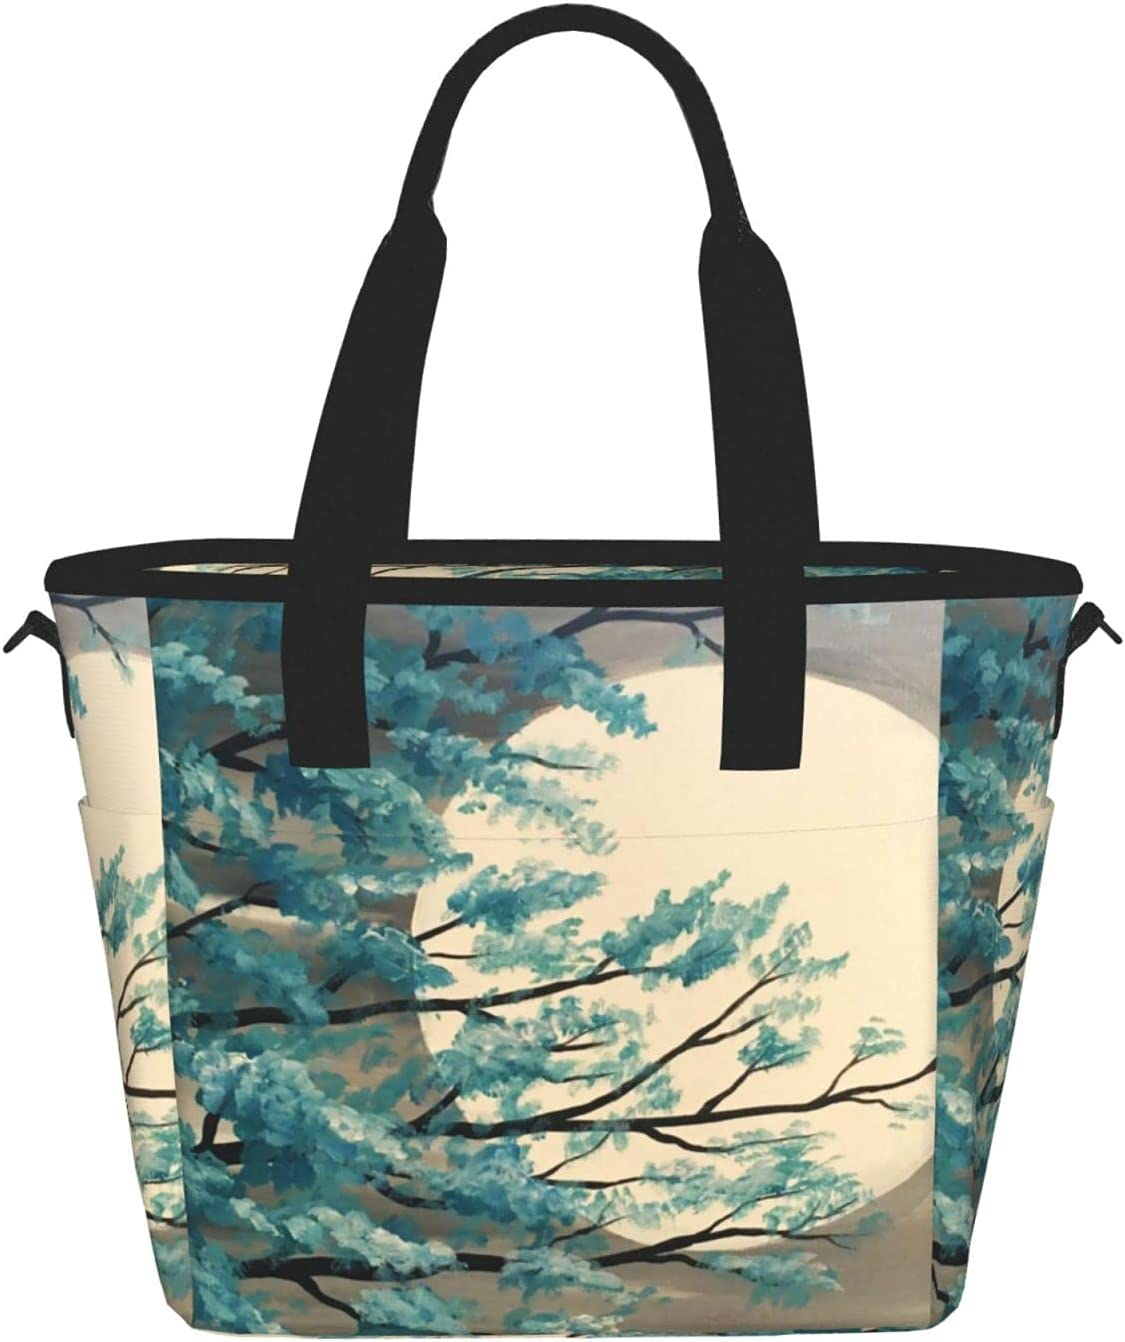 Tucson Mall Full Moon Reusable Insulated Tote OFFicial store Soft Container Lunch Food Bag